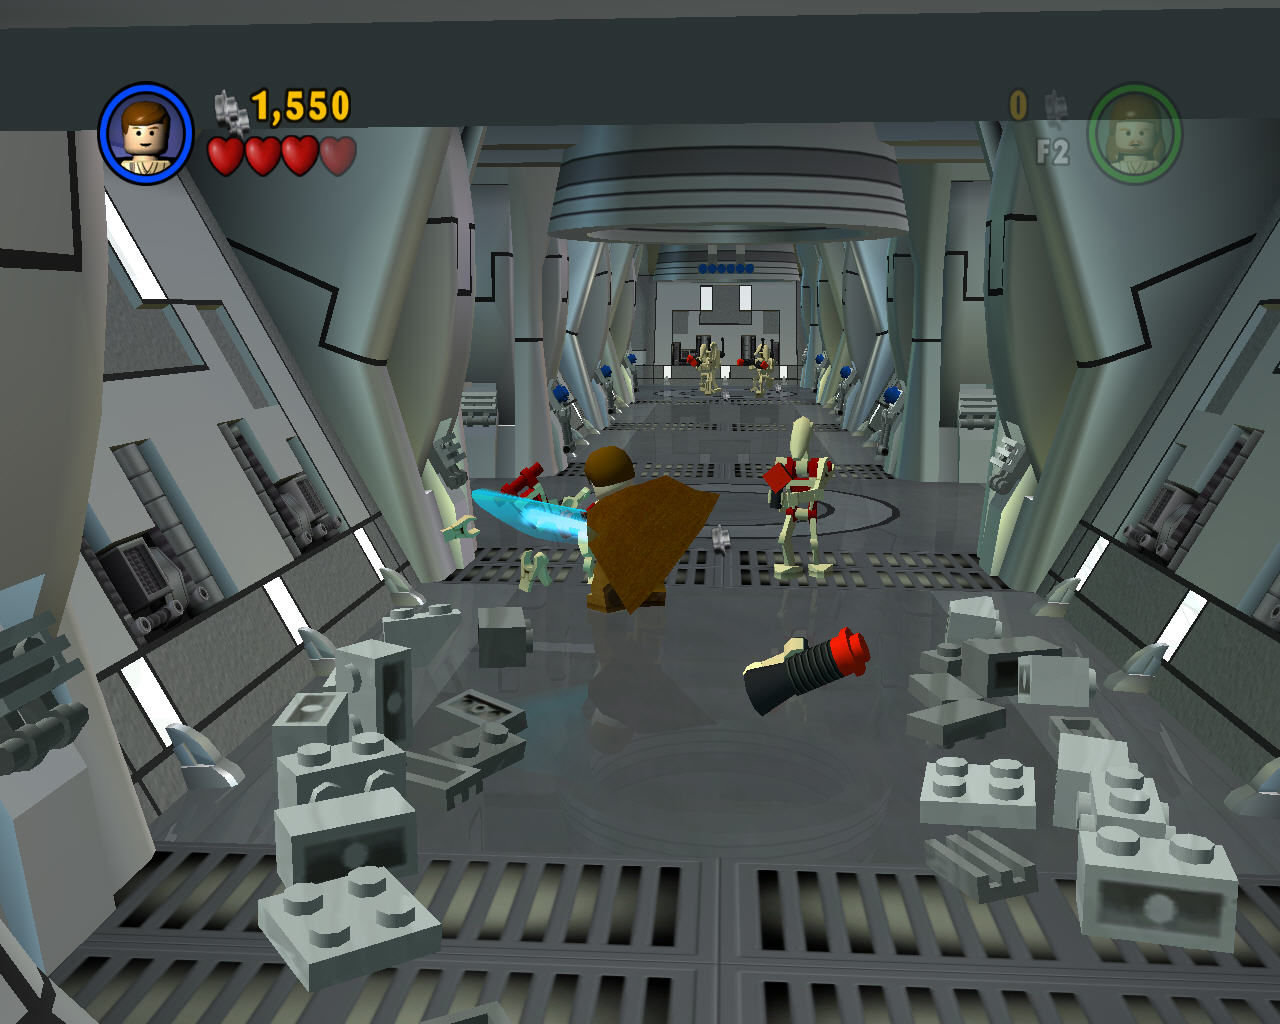 Lego Star Wars Video Game 11